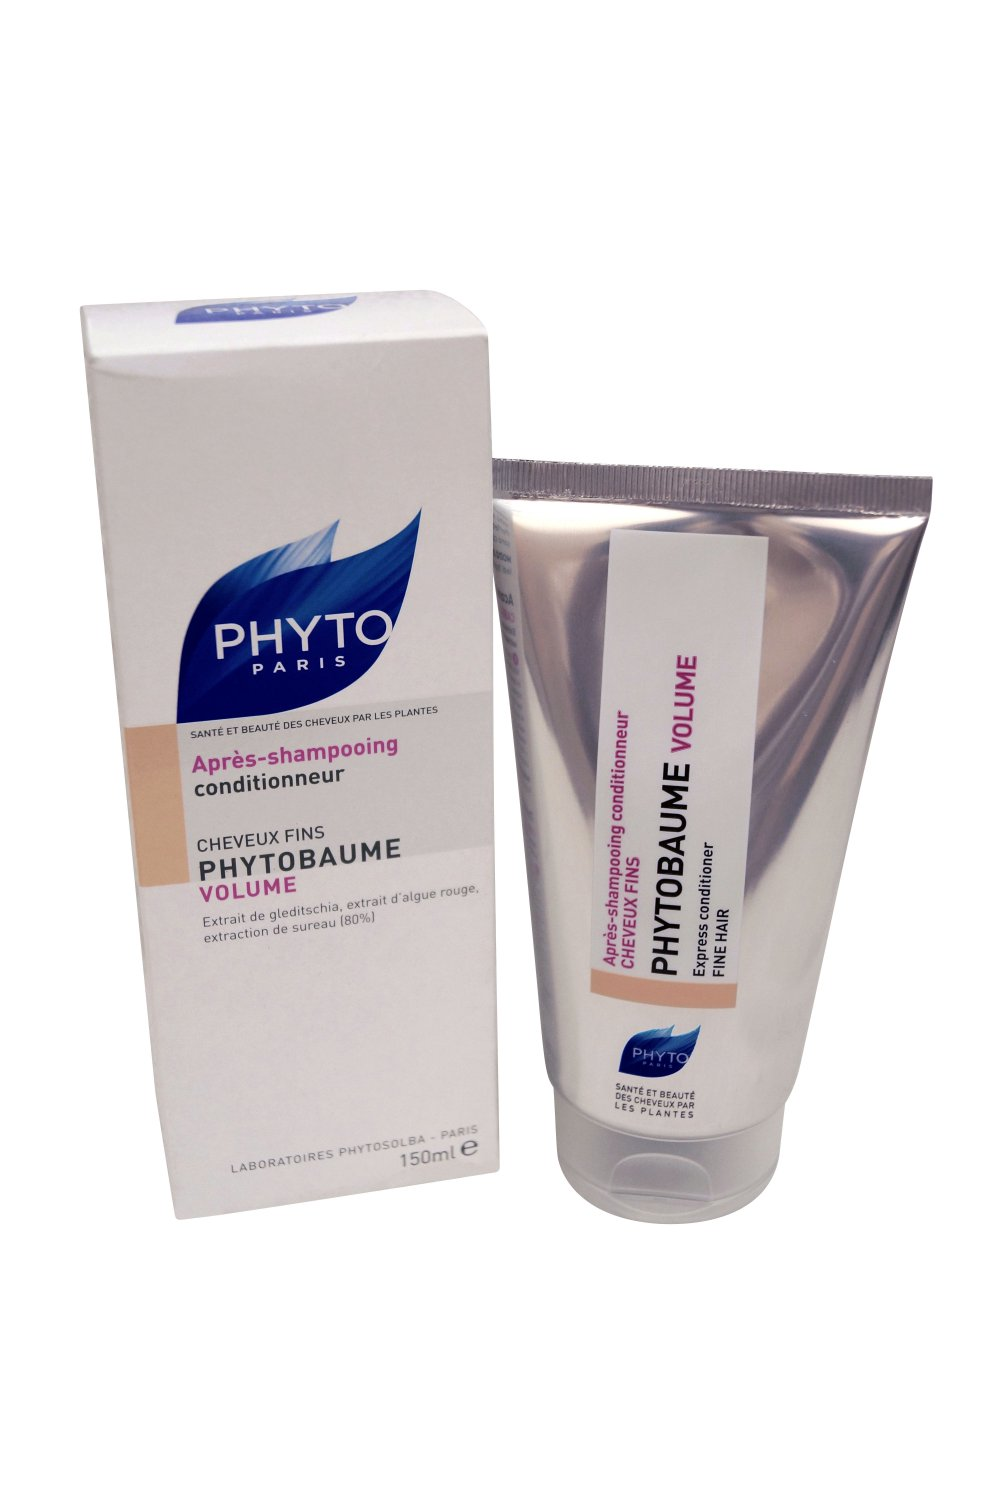 PHYTO PHYTOBAUME VOLUME Express Conditioner, 5 oz.